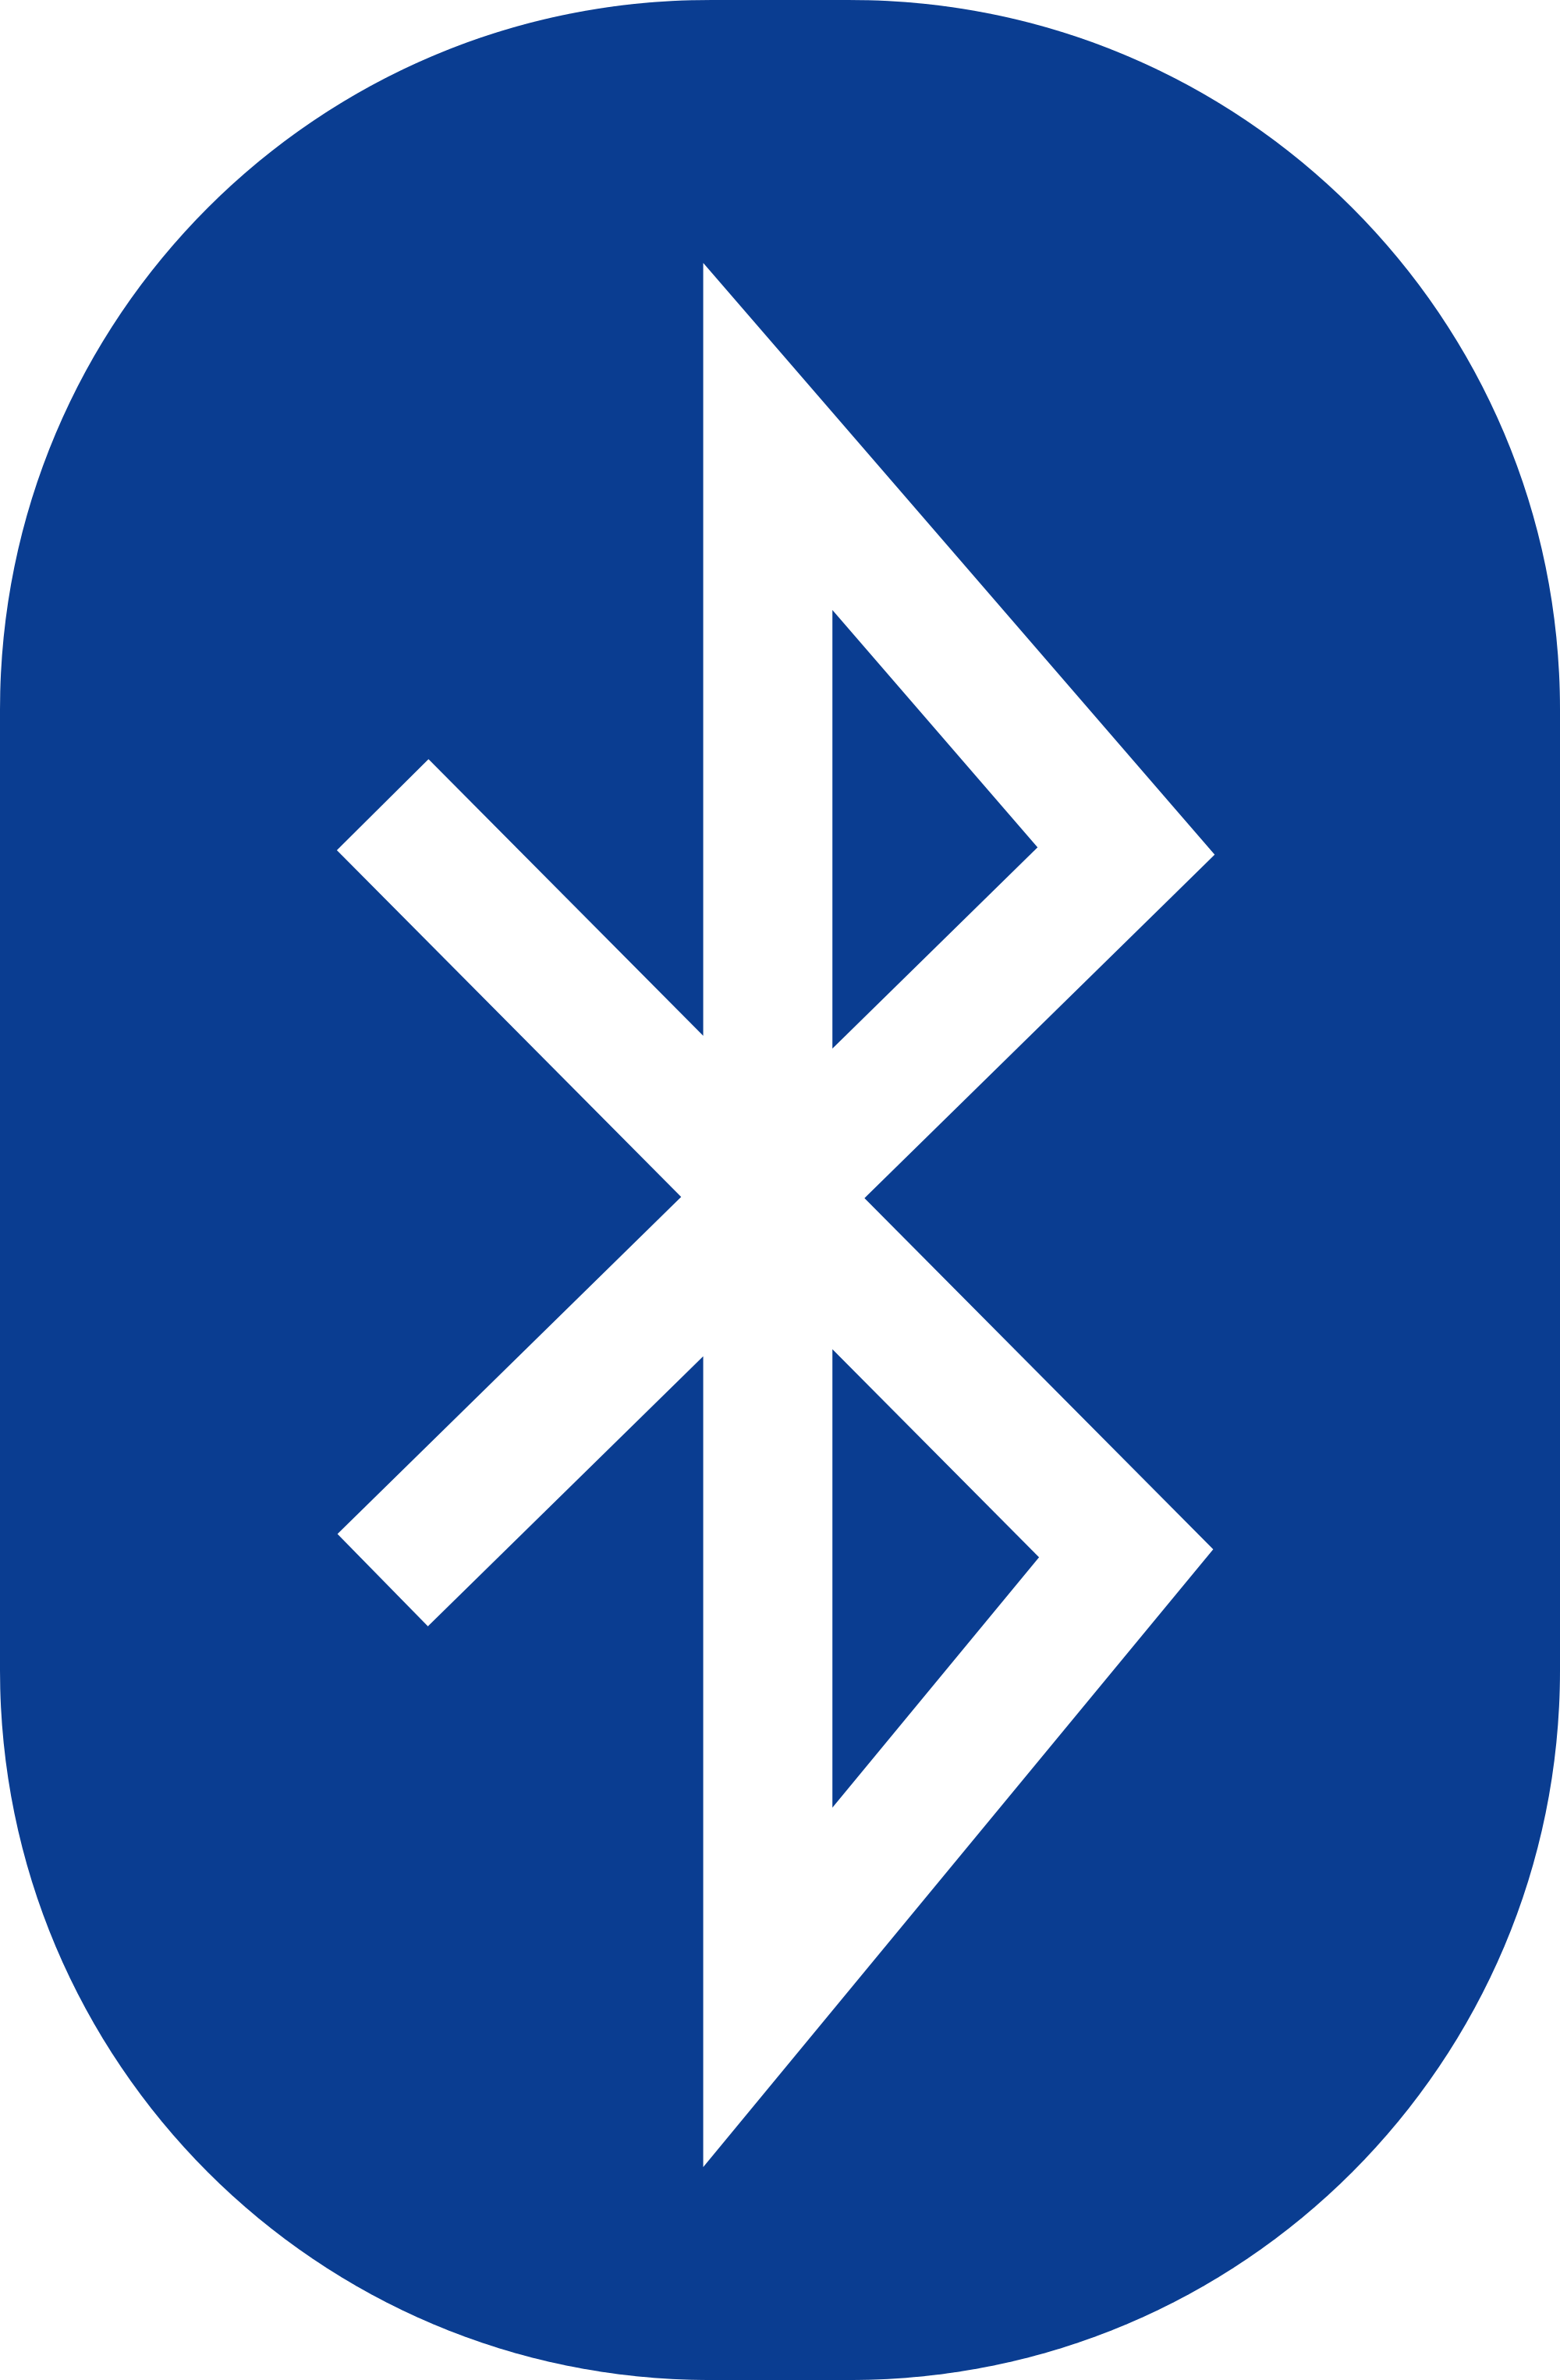 Bluetooth PNG, Bluetooth Logo, Bluetooth Download Clipart.